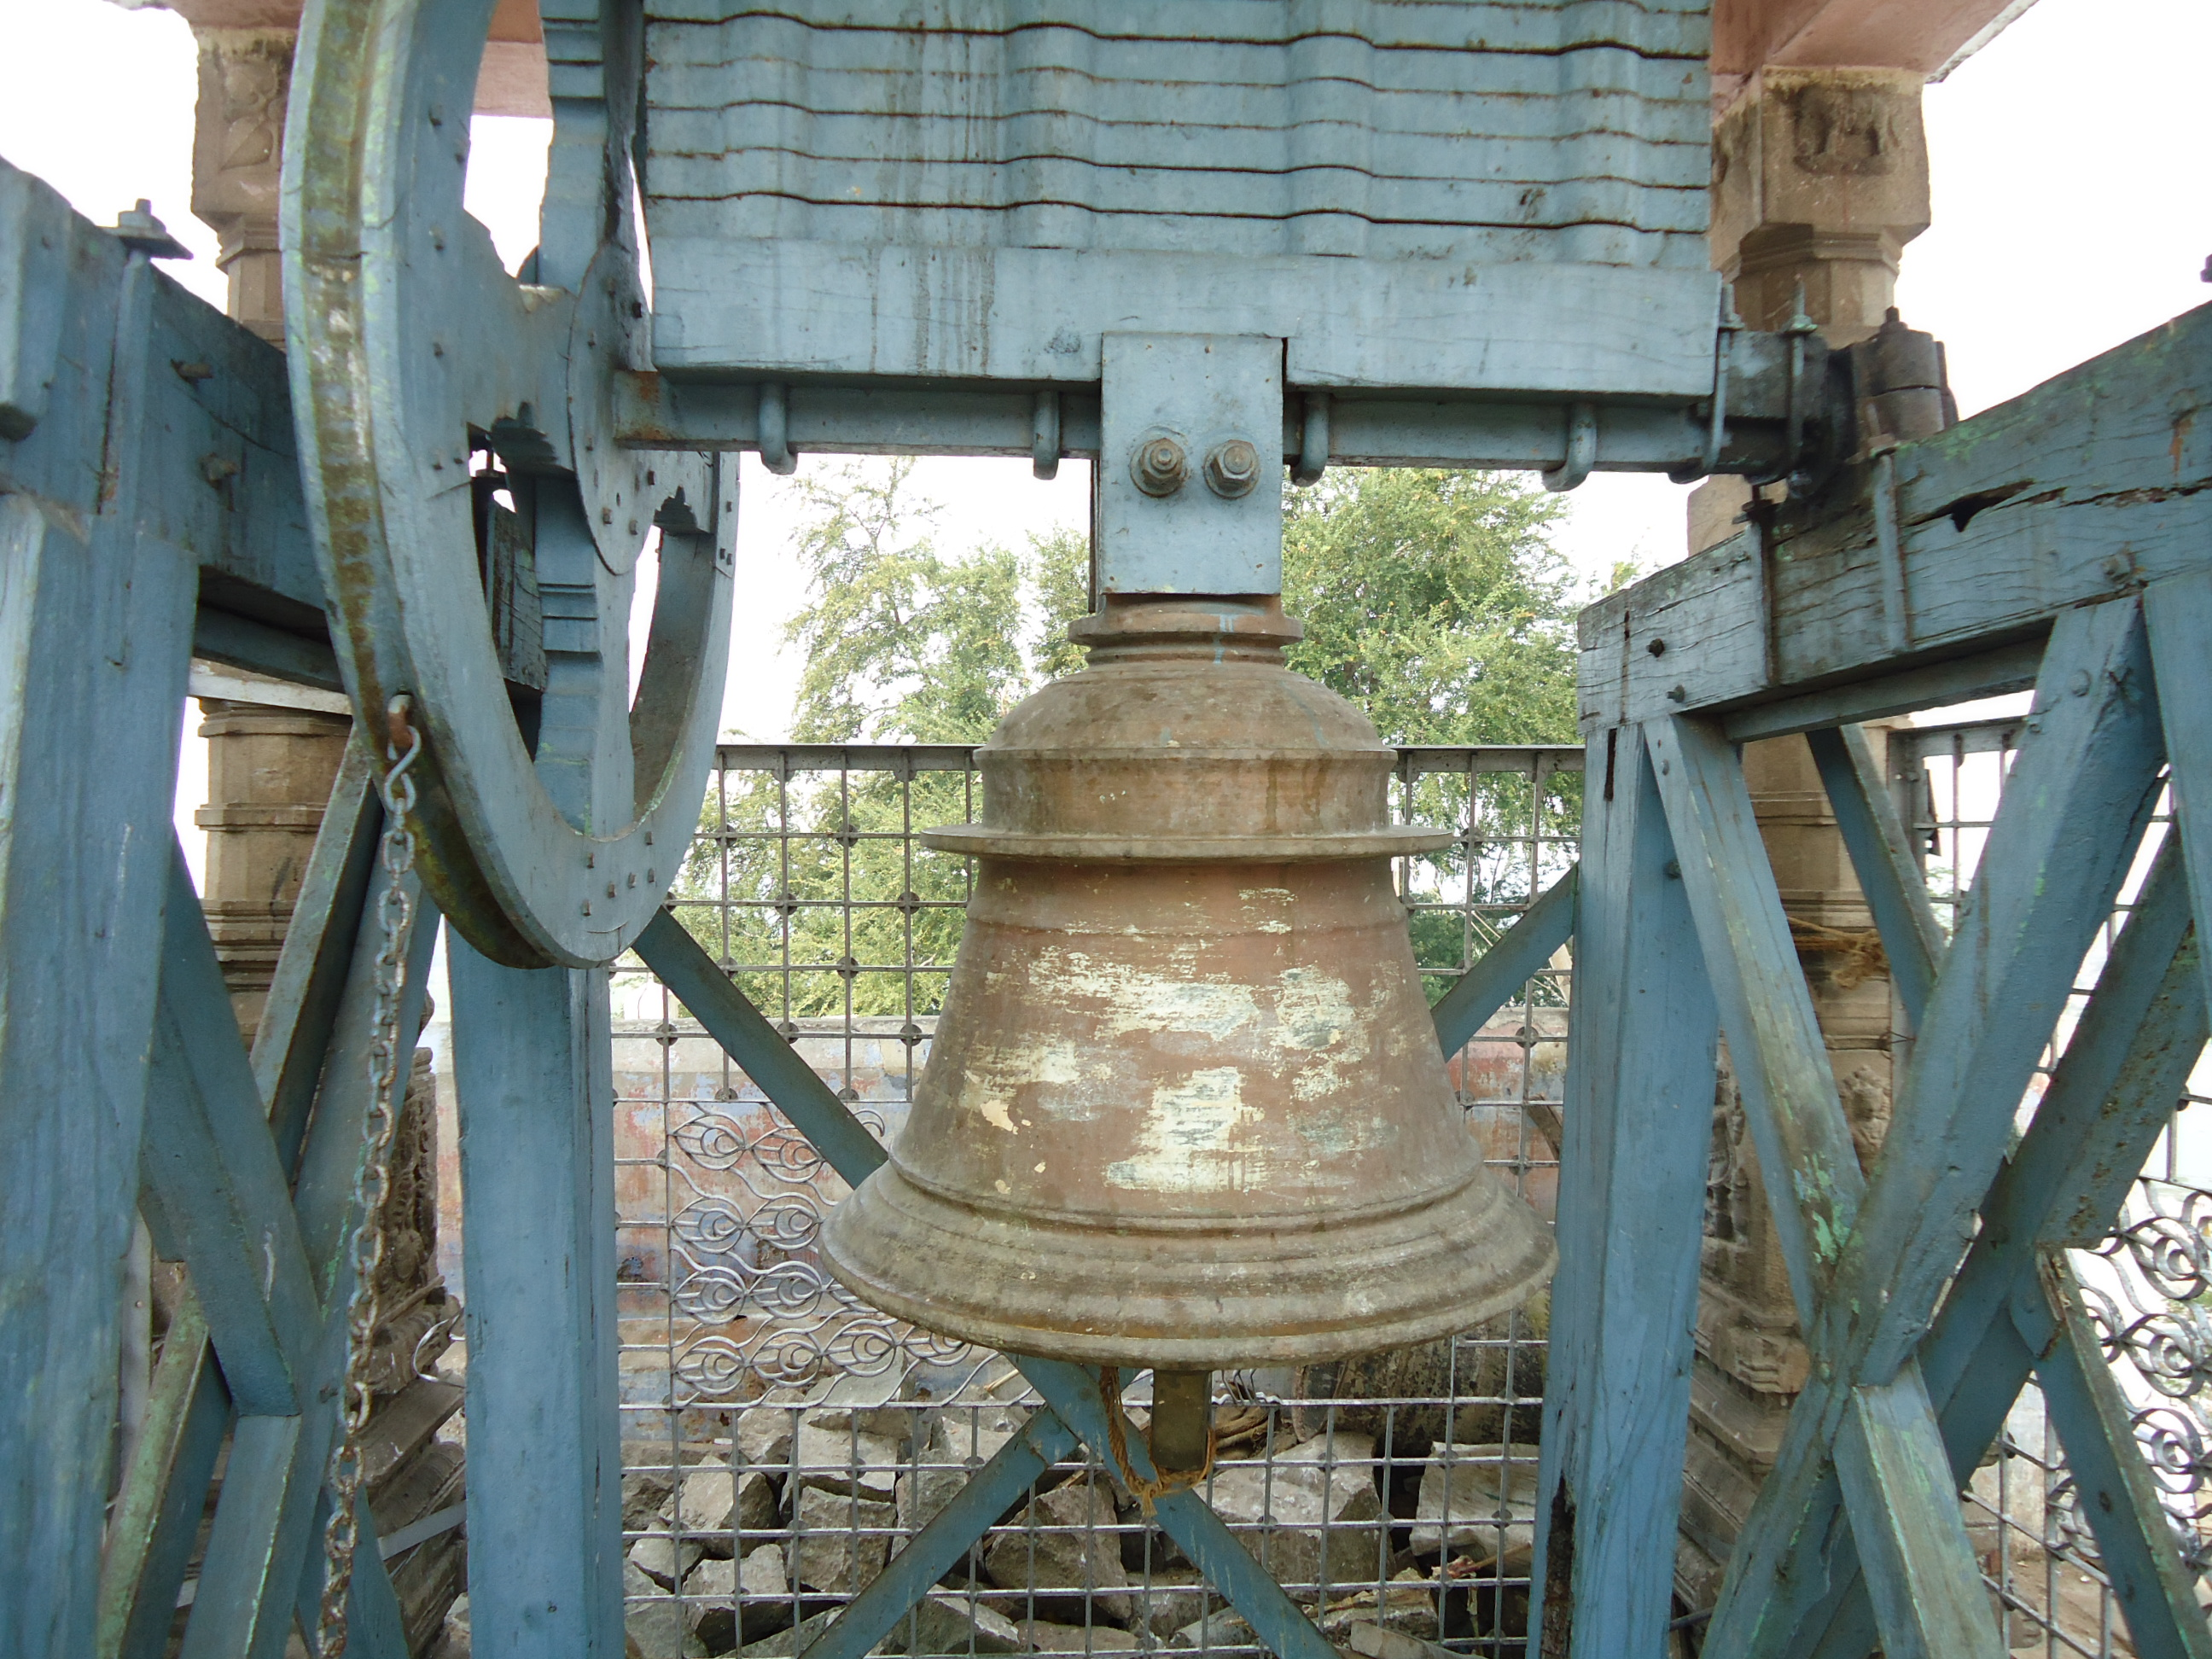 temple bell ringtones free download mobile